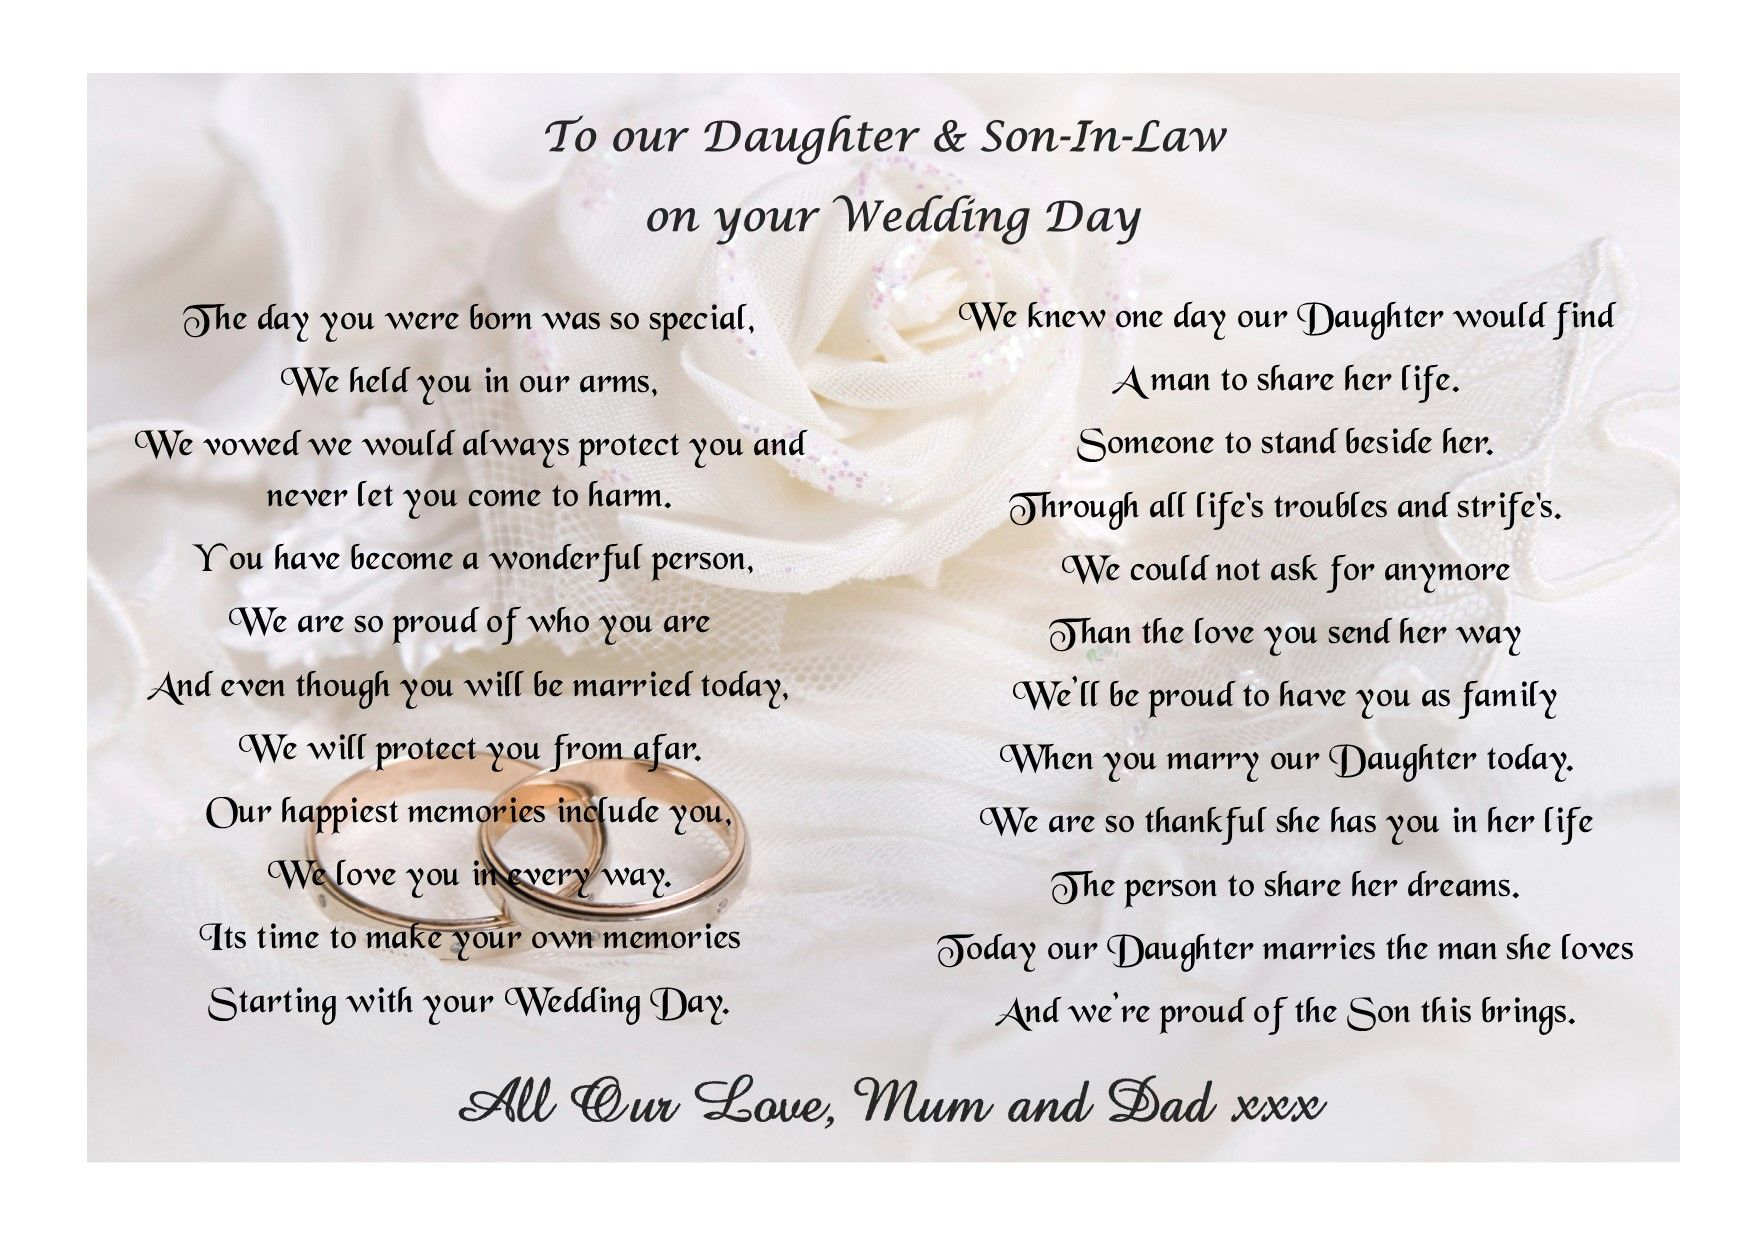 Poem For My Daughter And Son In Law On Your Wedding Day Wedding